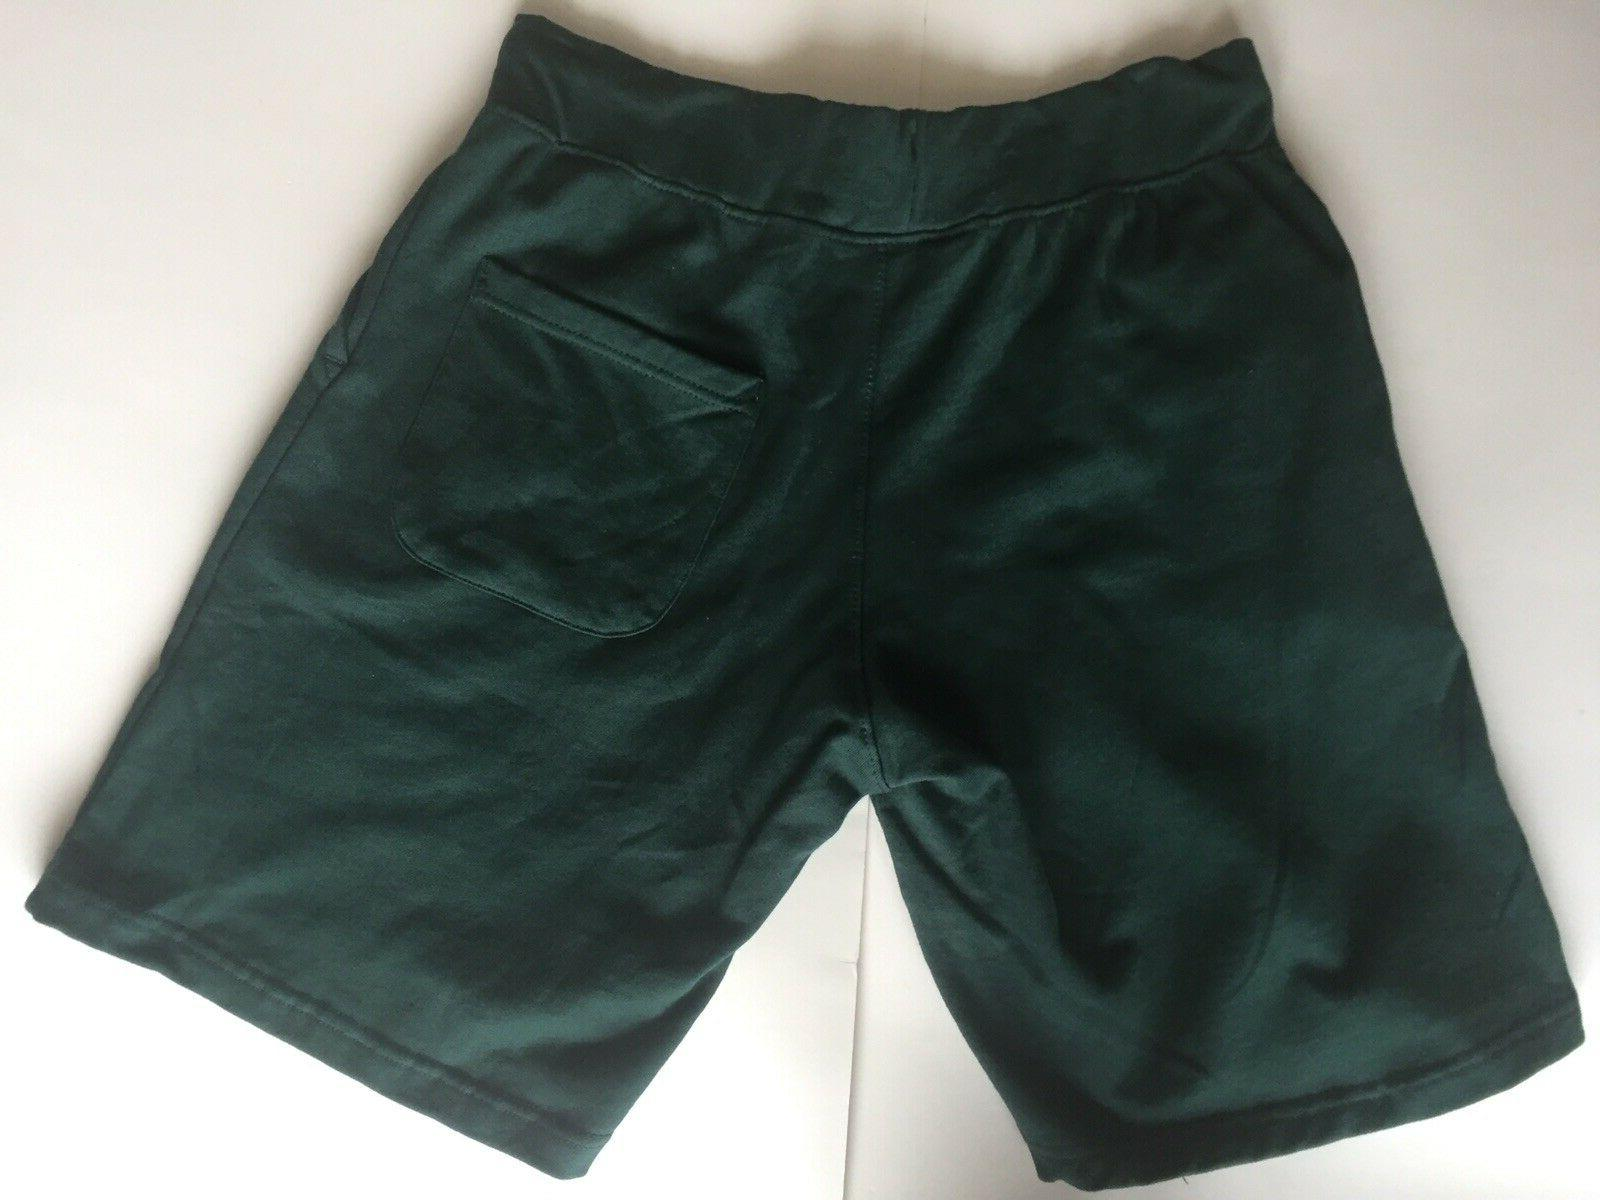 NEW ADC F Trefoil Shorts Green LARGE MSRP $69